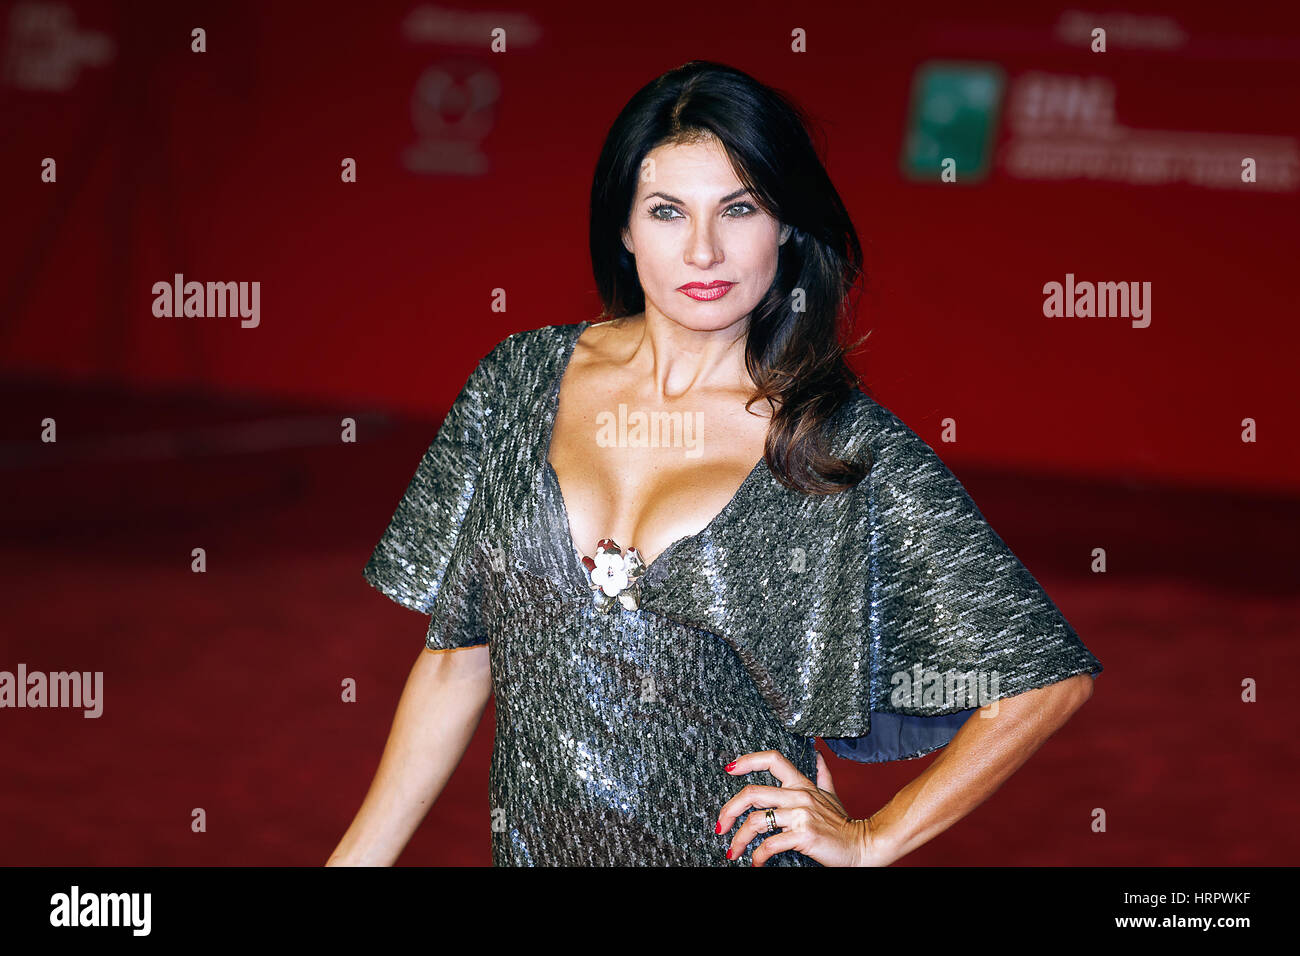 Rome, Italy - October 13, 2016. Nadia Bengala walks a red carpet for 'Moonlight'. - Stock Image